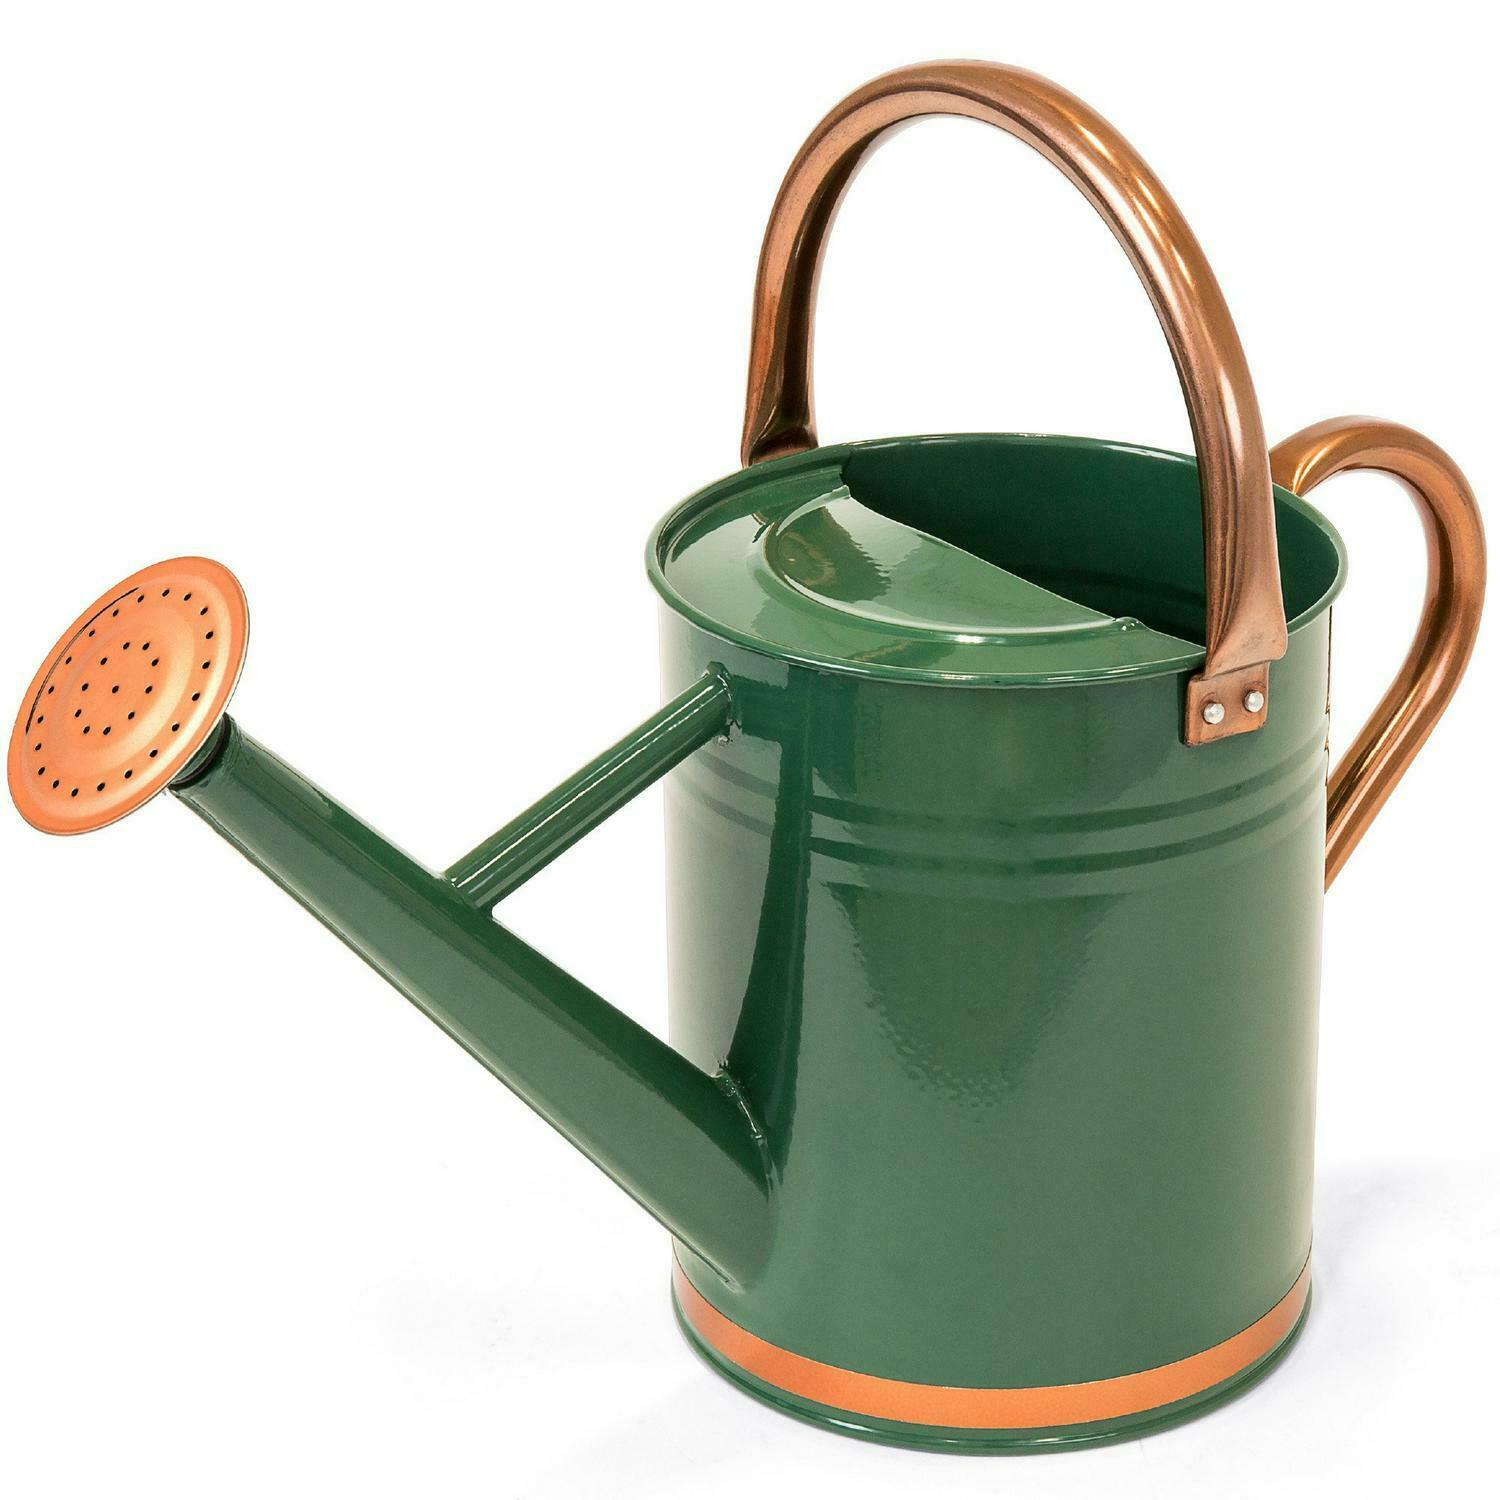 1 Gallon Watering Can Galvanized Steel Garden Bucket With O-Ring And Top Handle